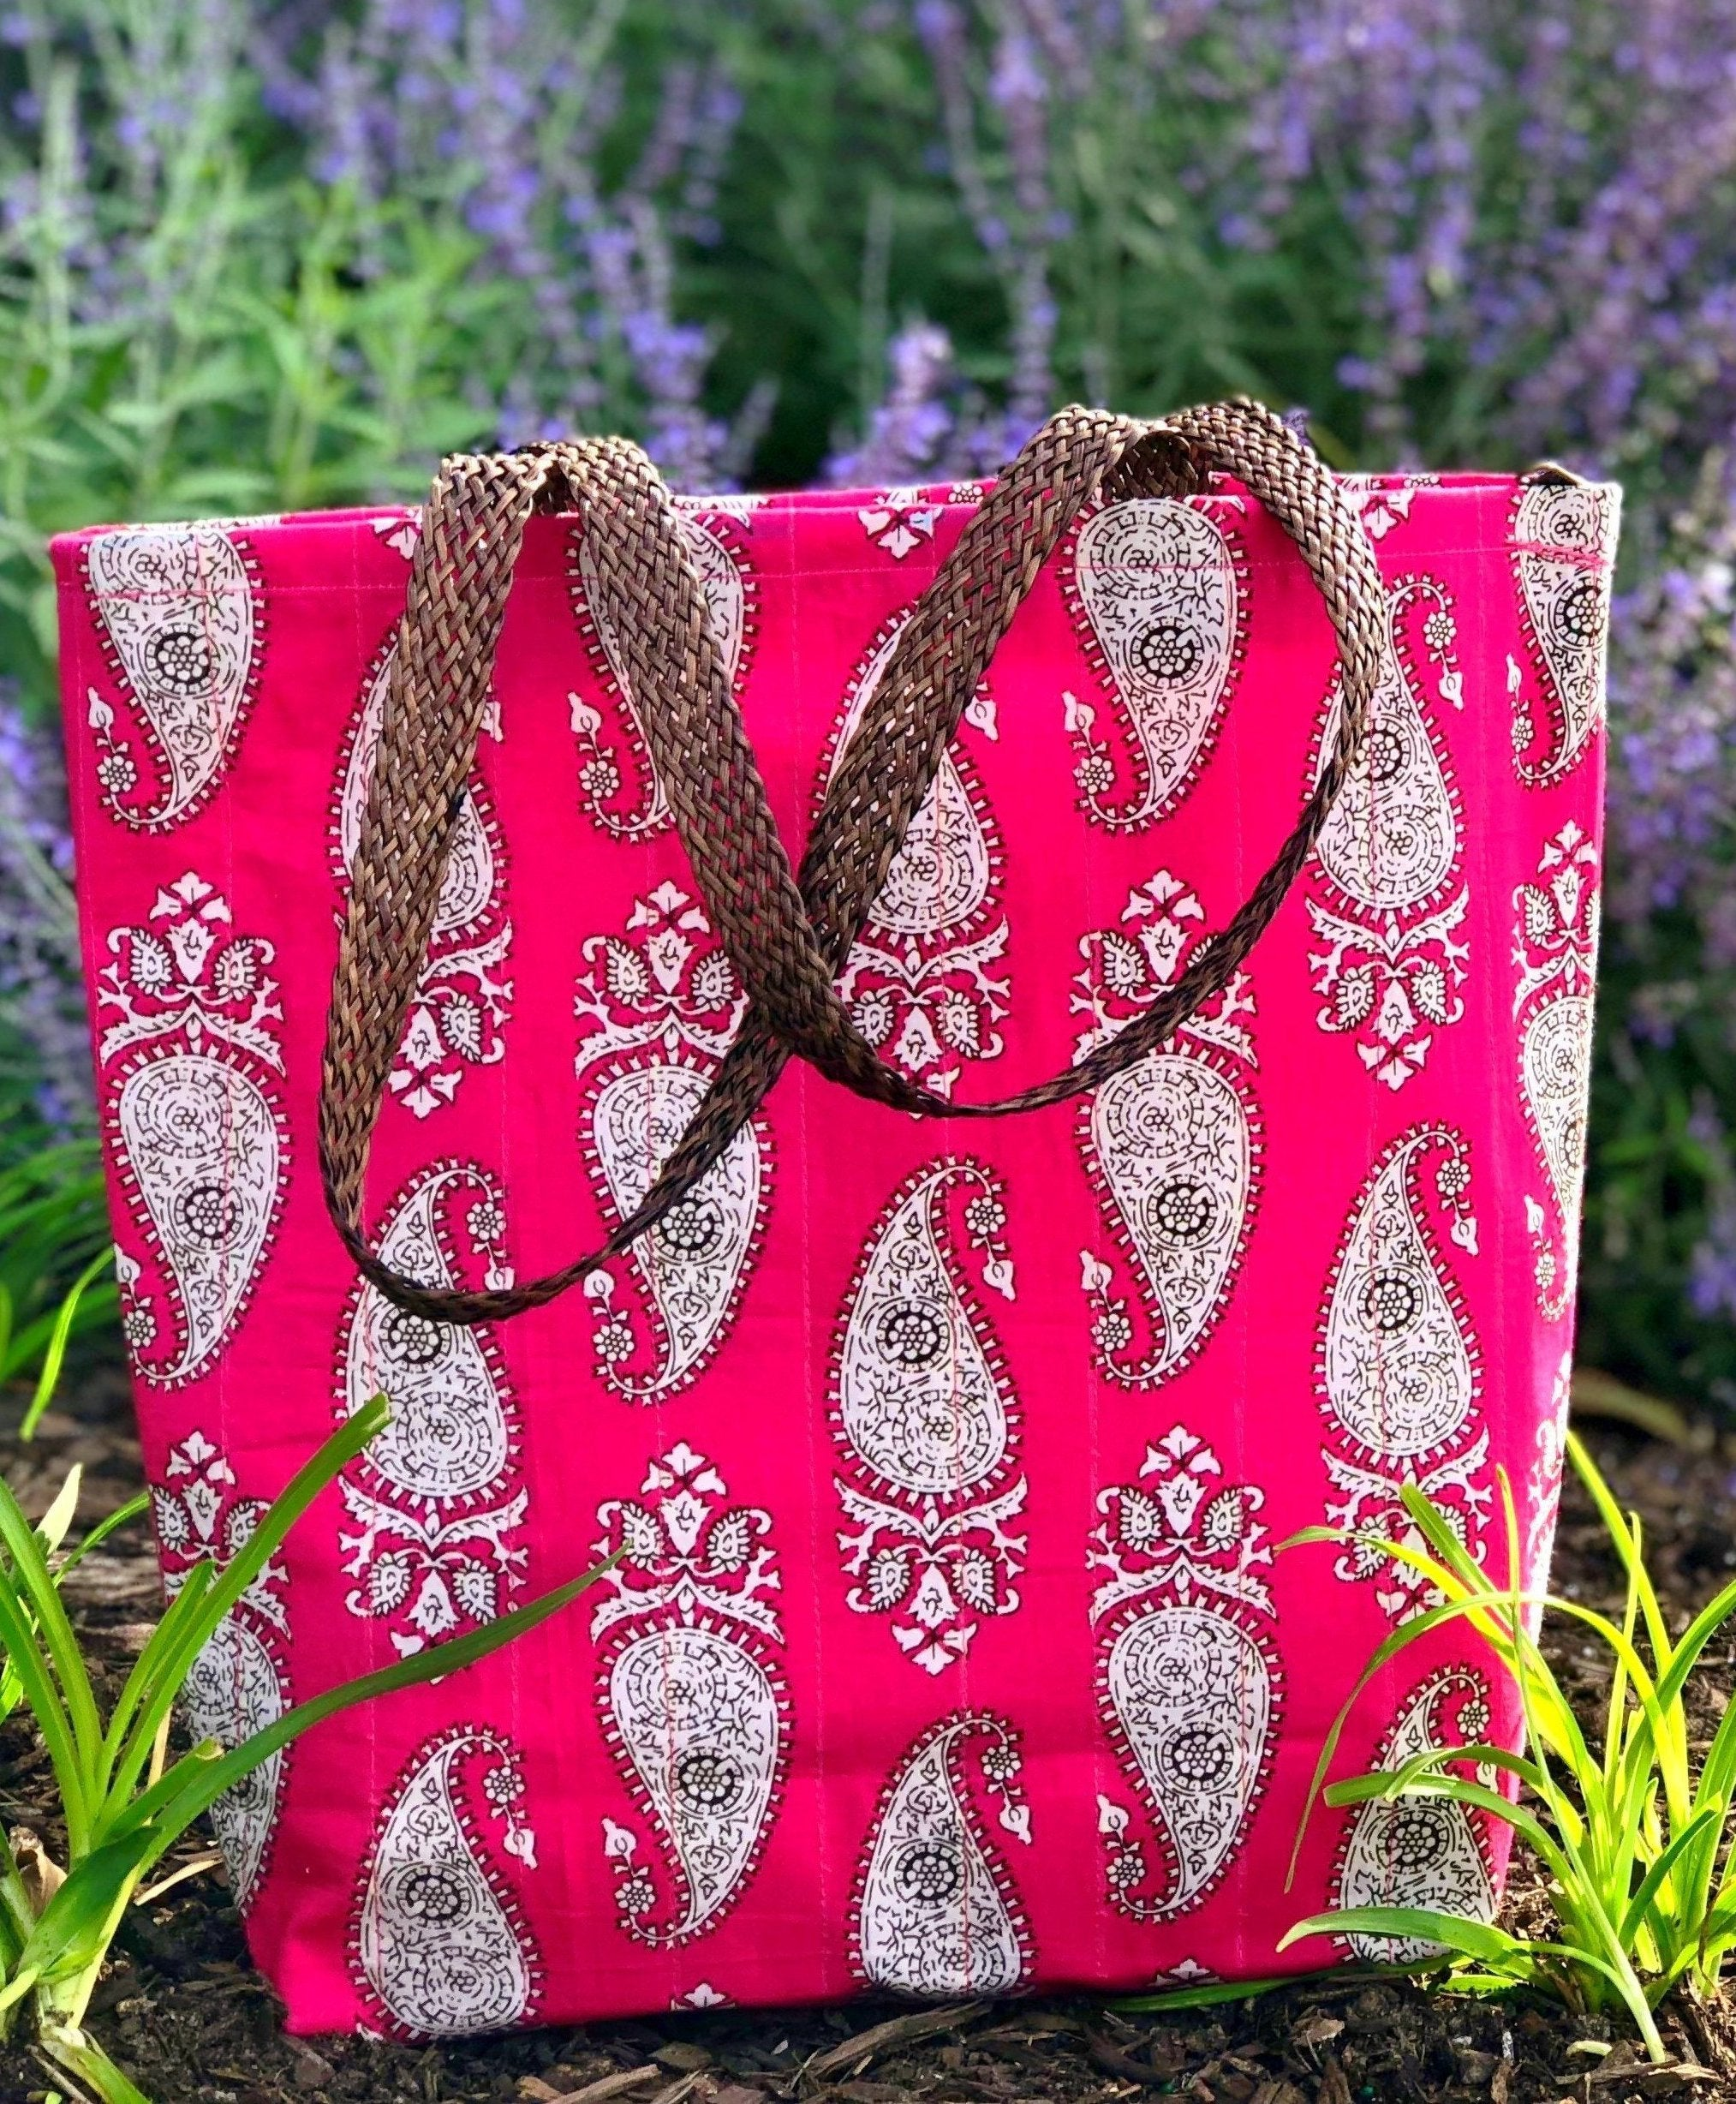 Handmade waterproof Colorful Fabric Indian unique tote handbag travelbag laptop bag traveltote pink paisely golden block print pinkbag printed summer colors pop of color ethnic